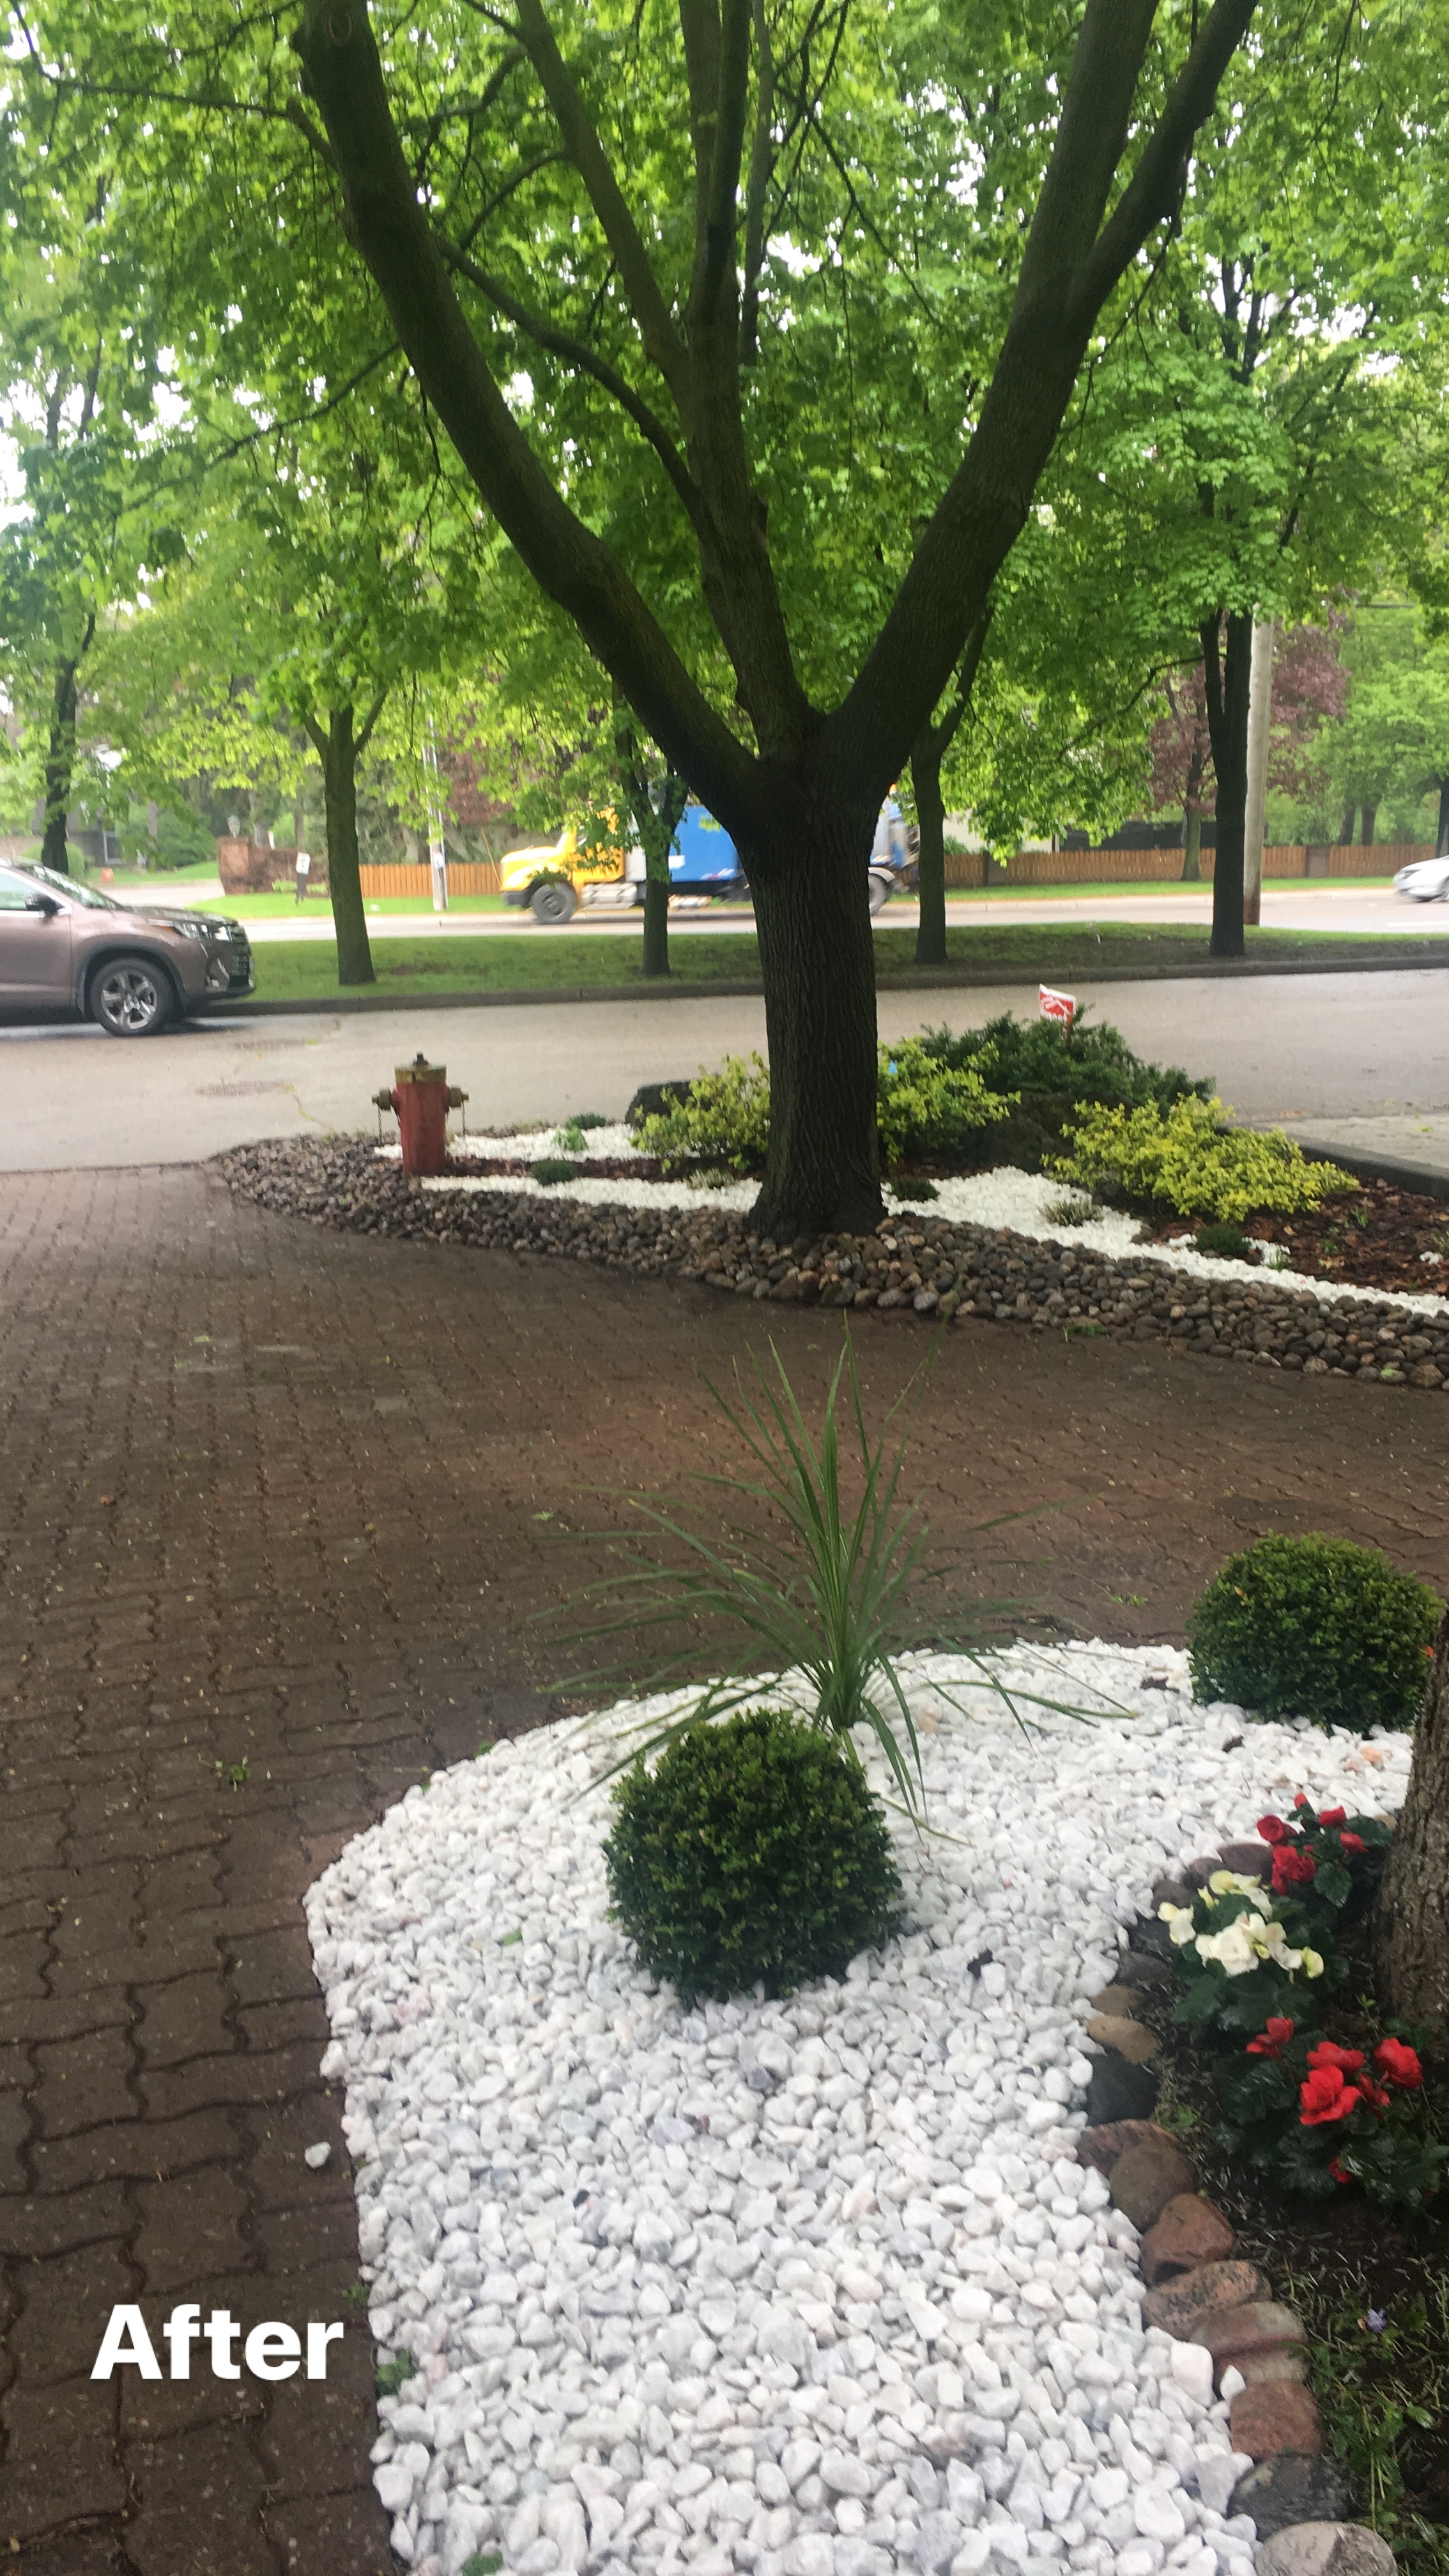 second-view-after-curb-appeal